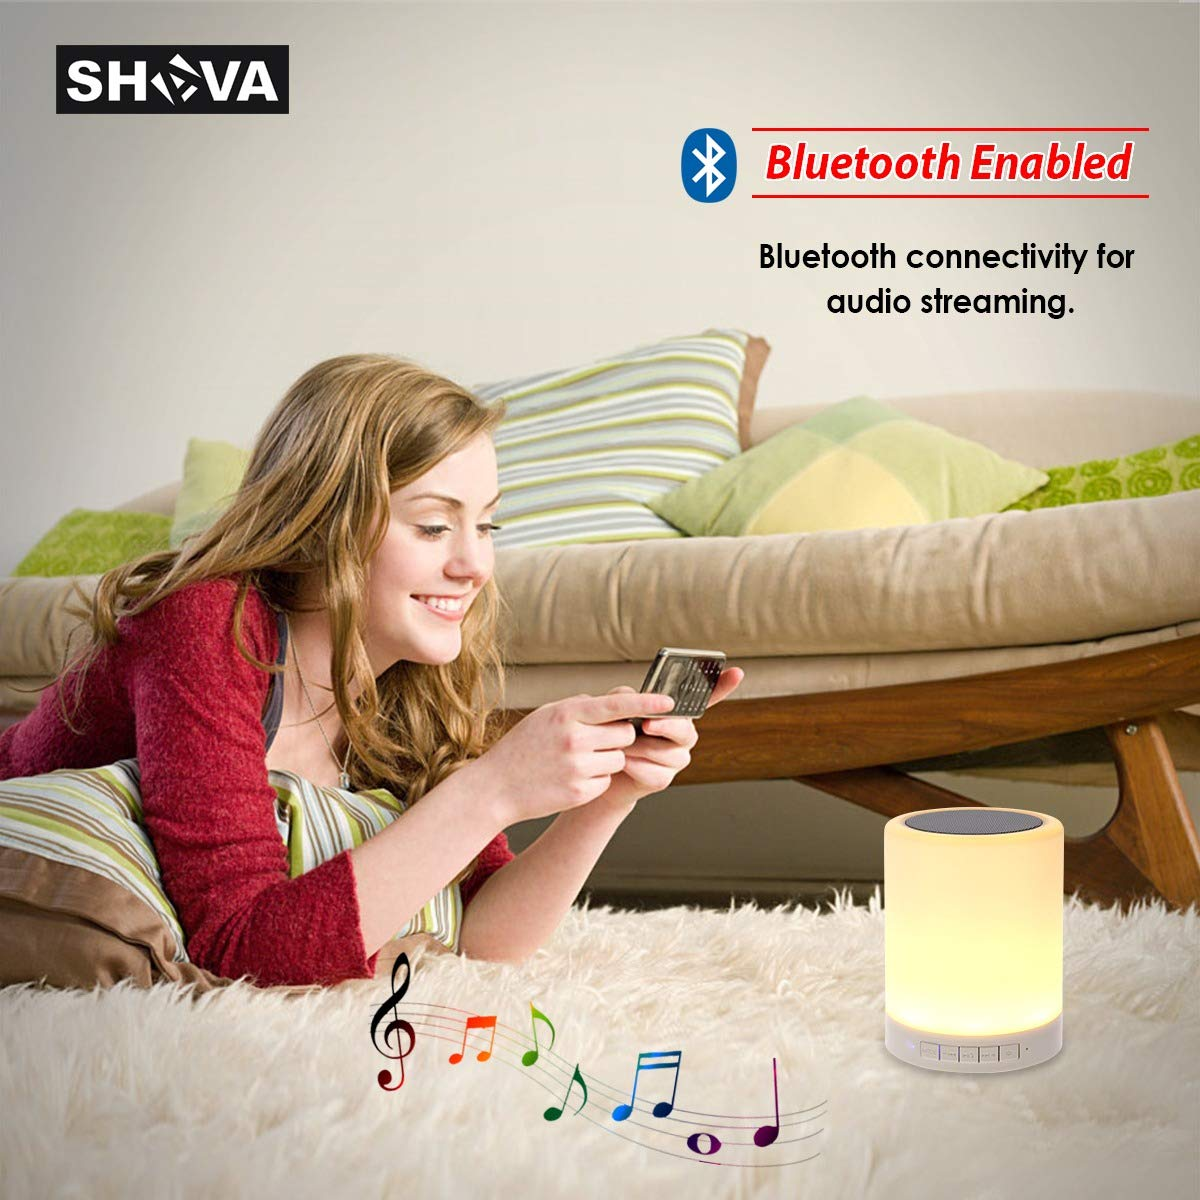 SHAVA Night Light Bluetooth Speaker, Portable Wireless Bluetooth Speakers, Touch Control, Color LED Speaker, Bedside Table Light, Speakerphone/TF Card/AUX-in Supported (White), 7